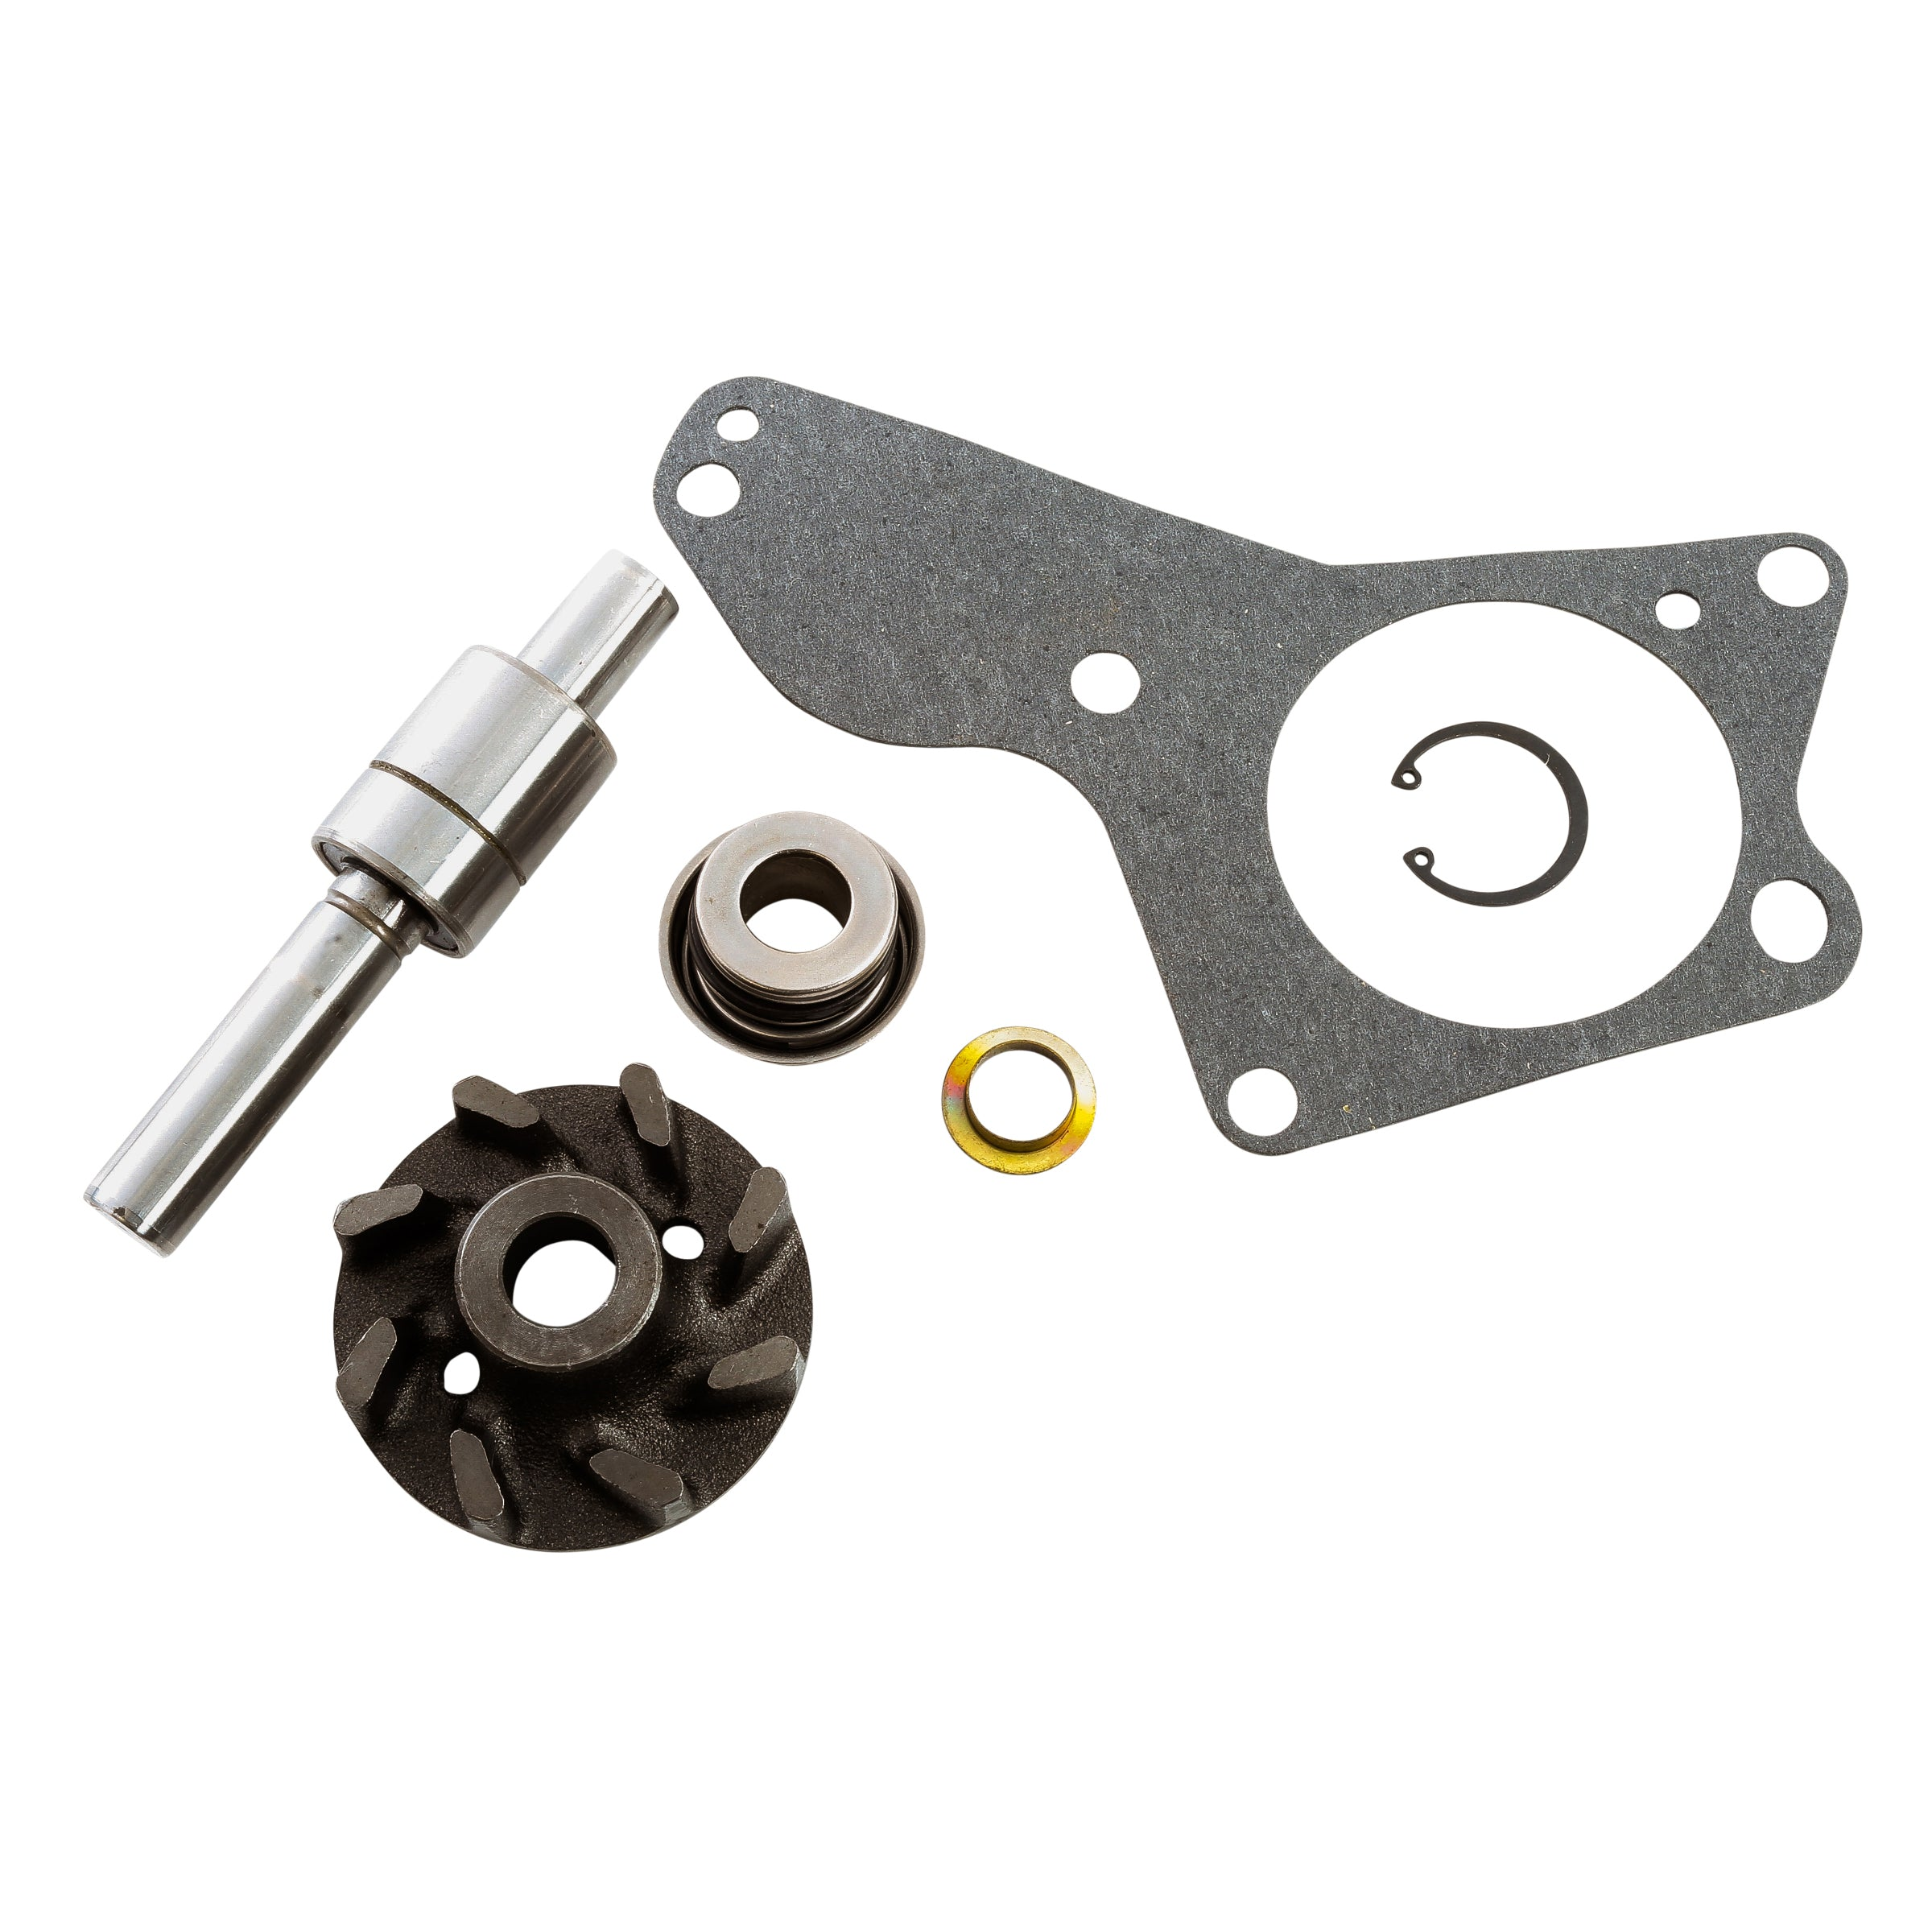 Water Pump Rebuild Kit • 1948-53 Ford Passenger & 1948-53 Pickup V-8